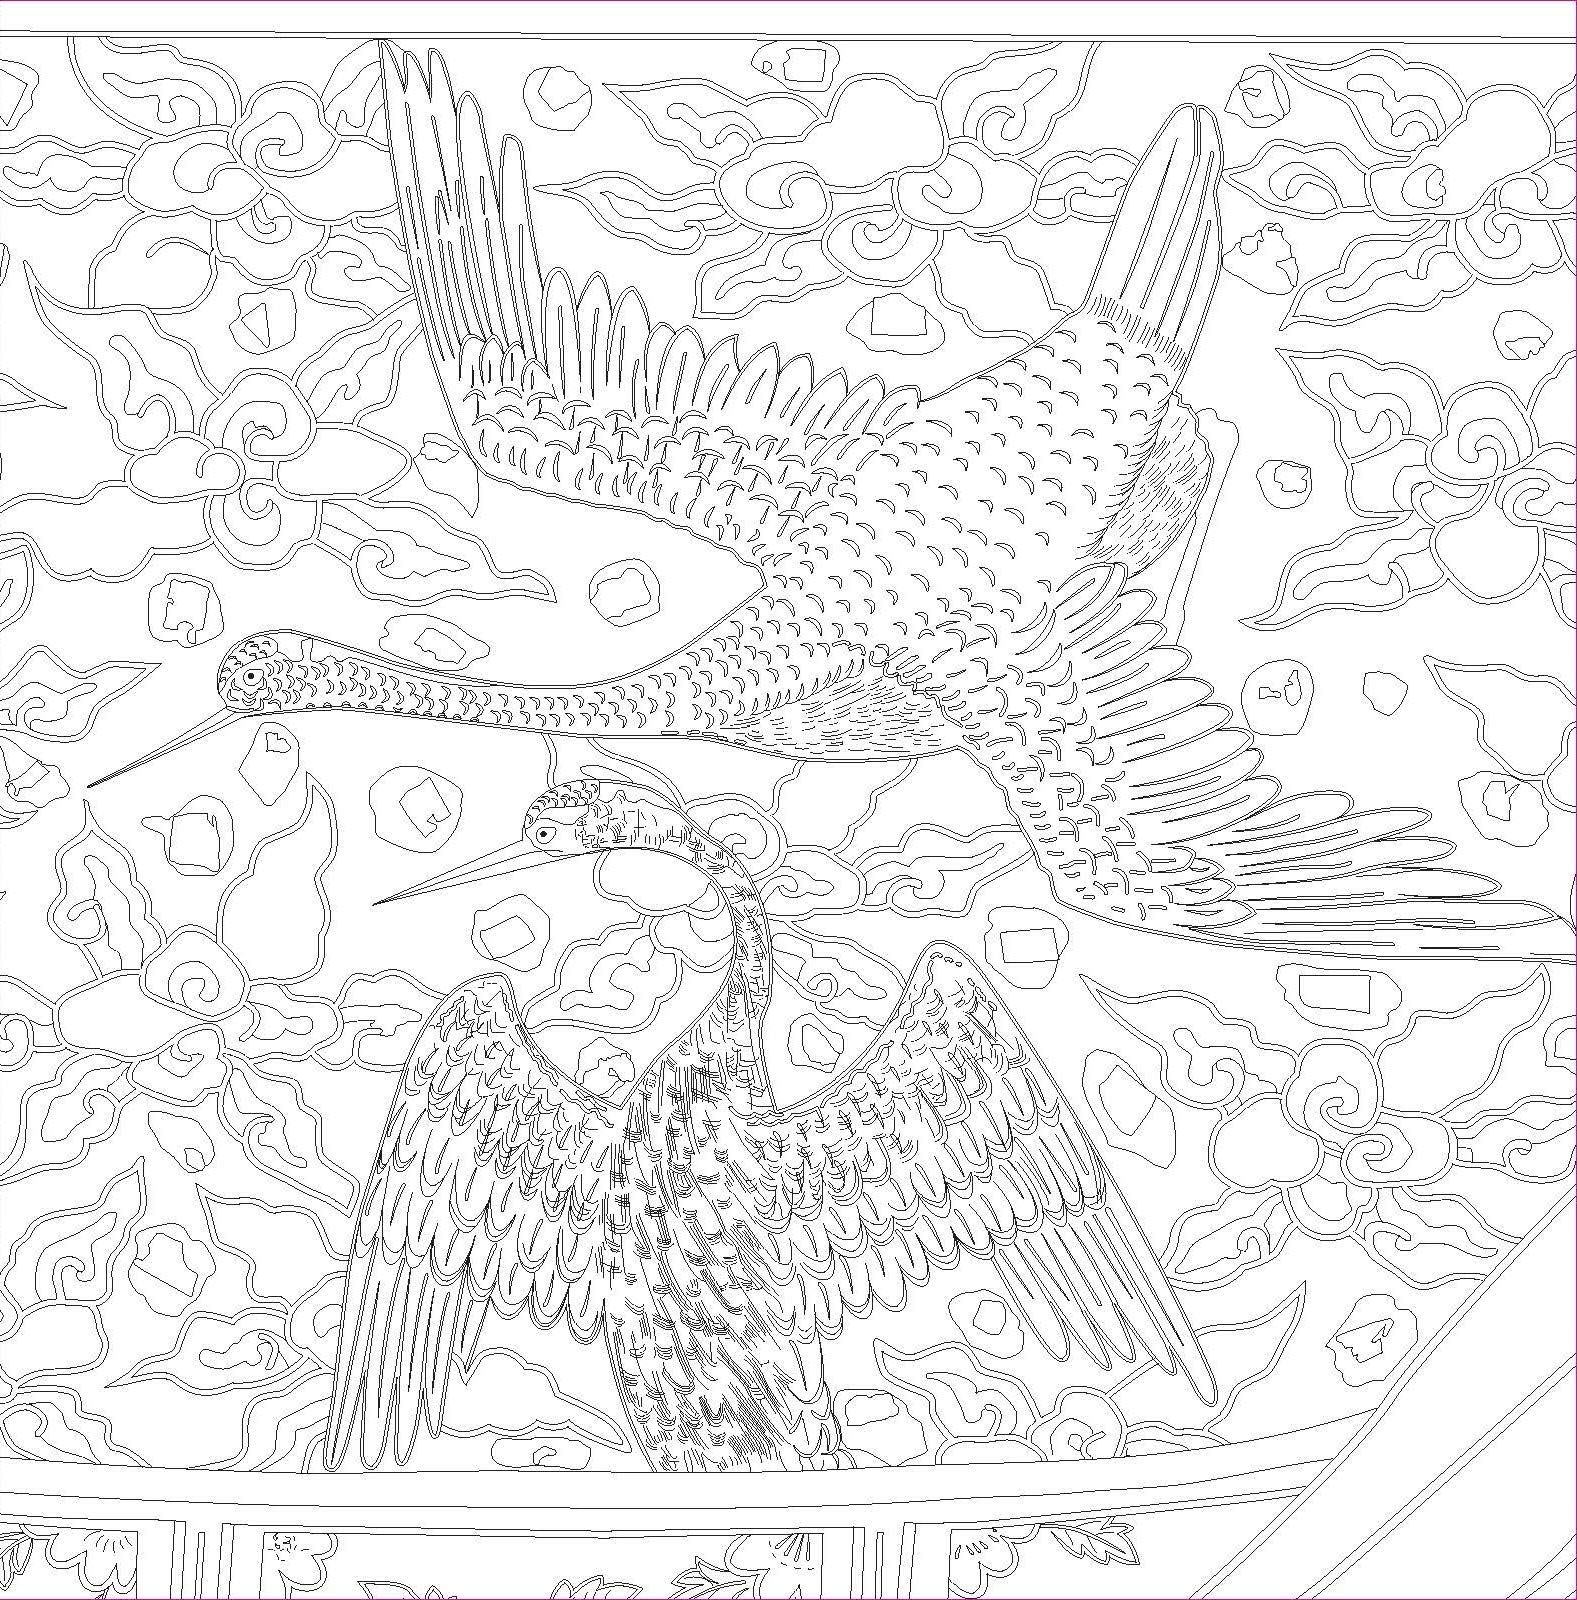 A Touch Of Asia Coloring Book Serenely Elegant Designs From The East Tear Out Sheets Let You Share Pages Or Frame Your Fi Coloring Books Elegant Design Color